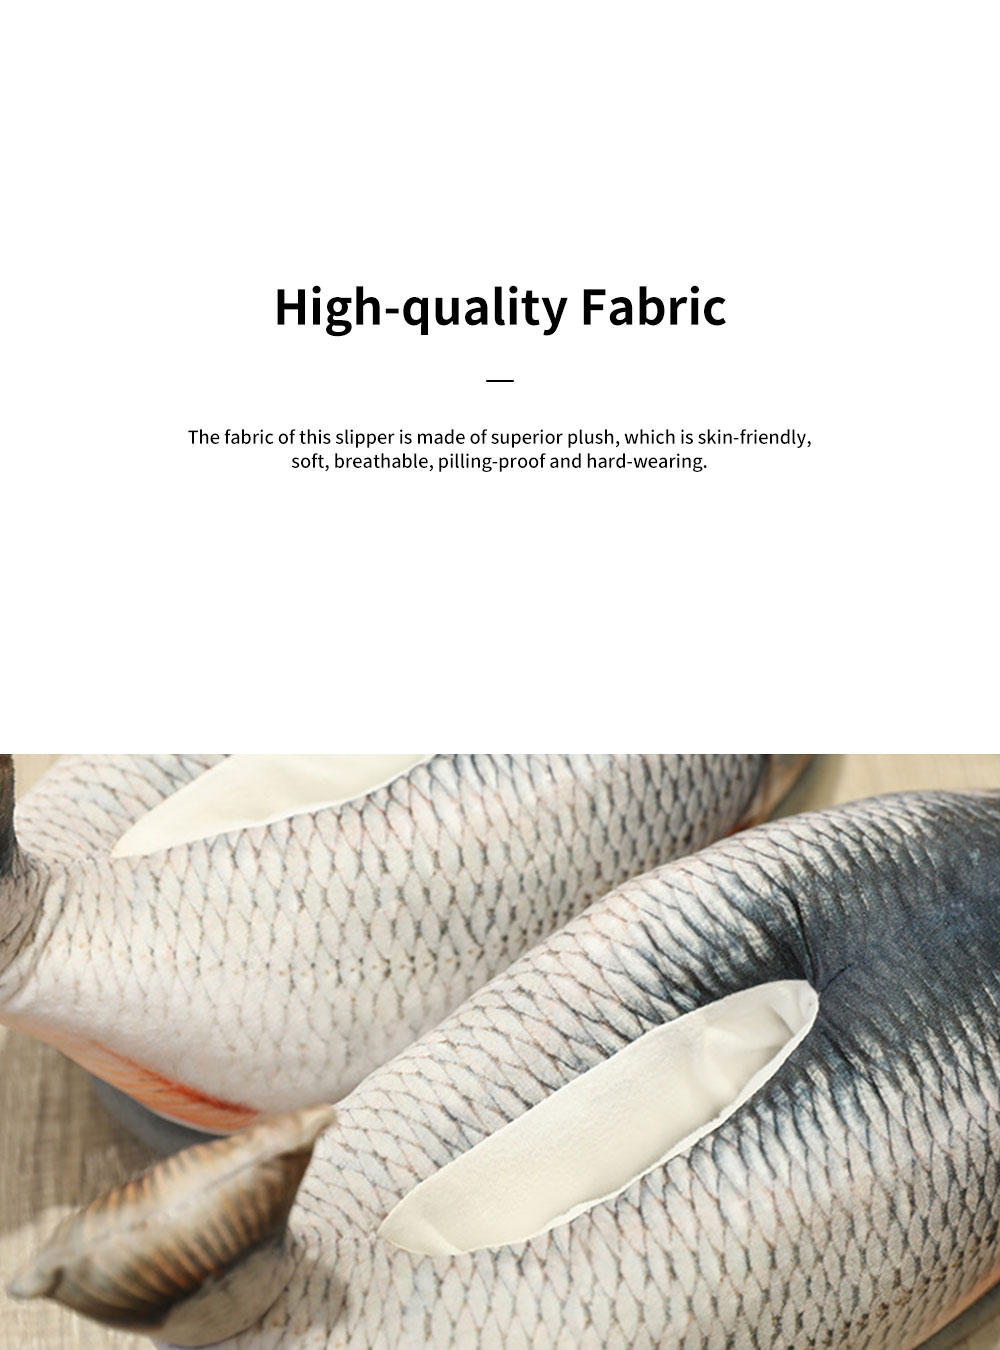 Creative Cute Funny Fish Model Cotton Indoor Slippers Pantofle Winter Autumn Warm Household Shoes 1